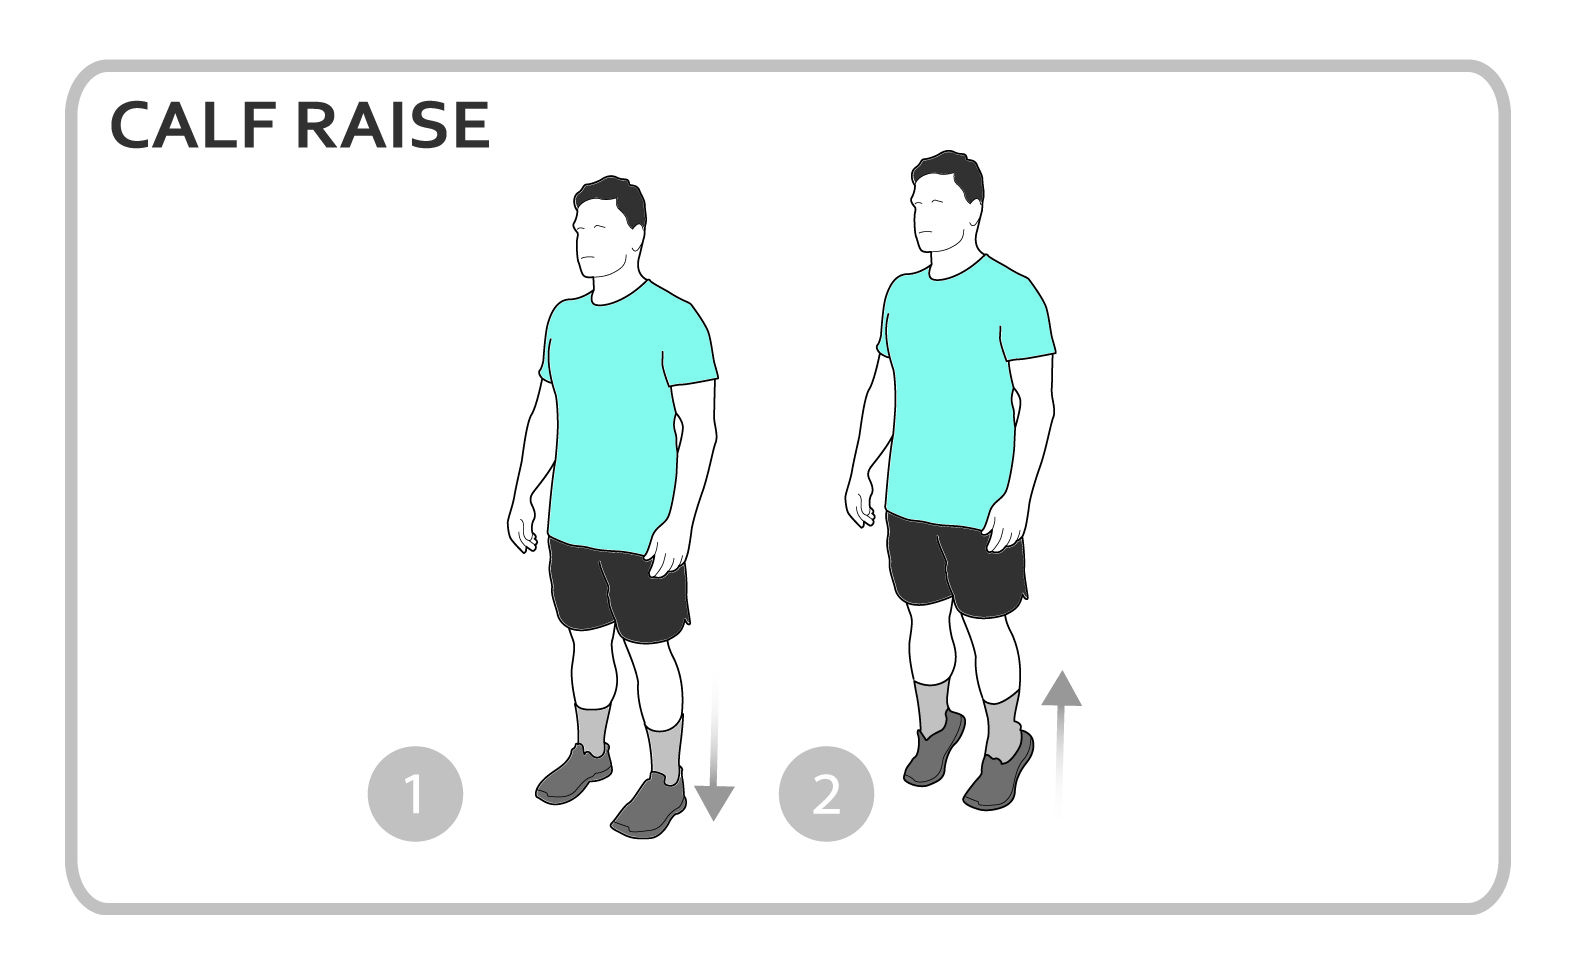 Calf Raise Exercise Diagram  Lower Body  Personal Fitness